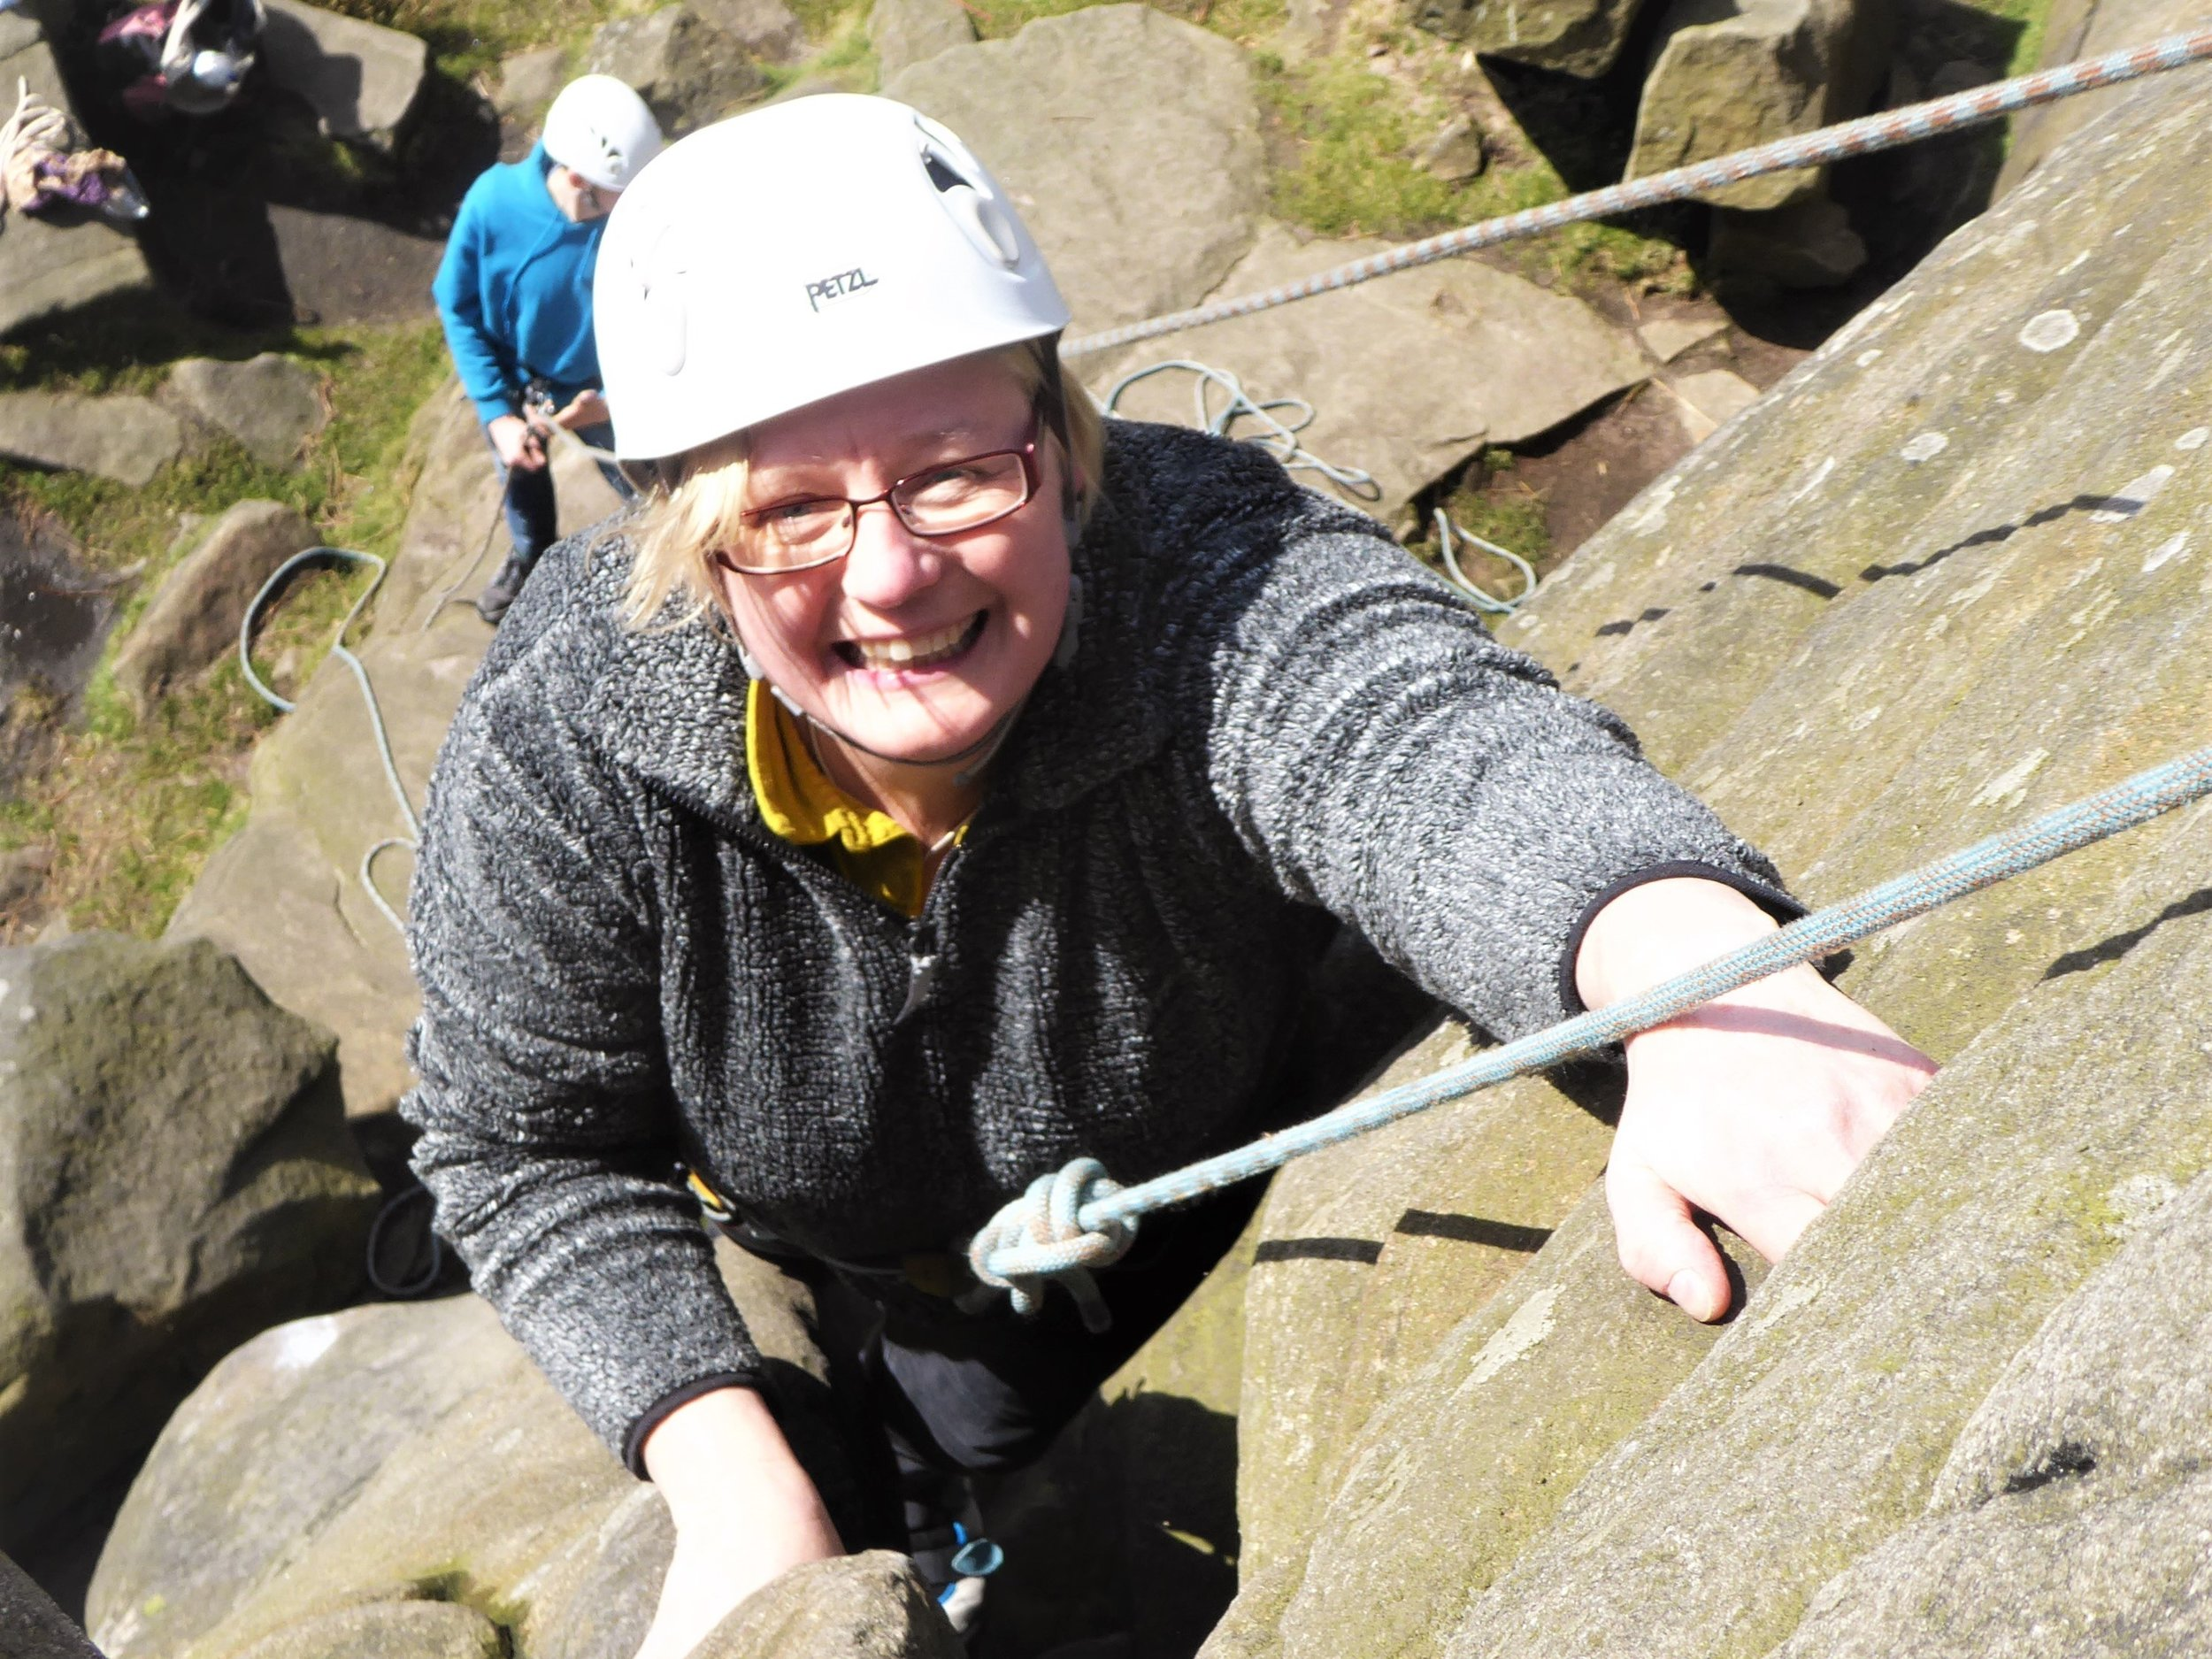 Rock Climbing - Climb on real rock in the beautiful Peak District. No prior experience is required. We can climb on any of the gritstone edges in the Peak District.If you already have some climbing experience and want to improve you can contact our coaches to book an outdoor session with them.